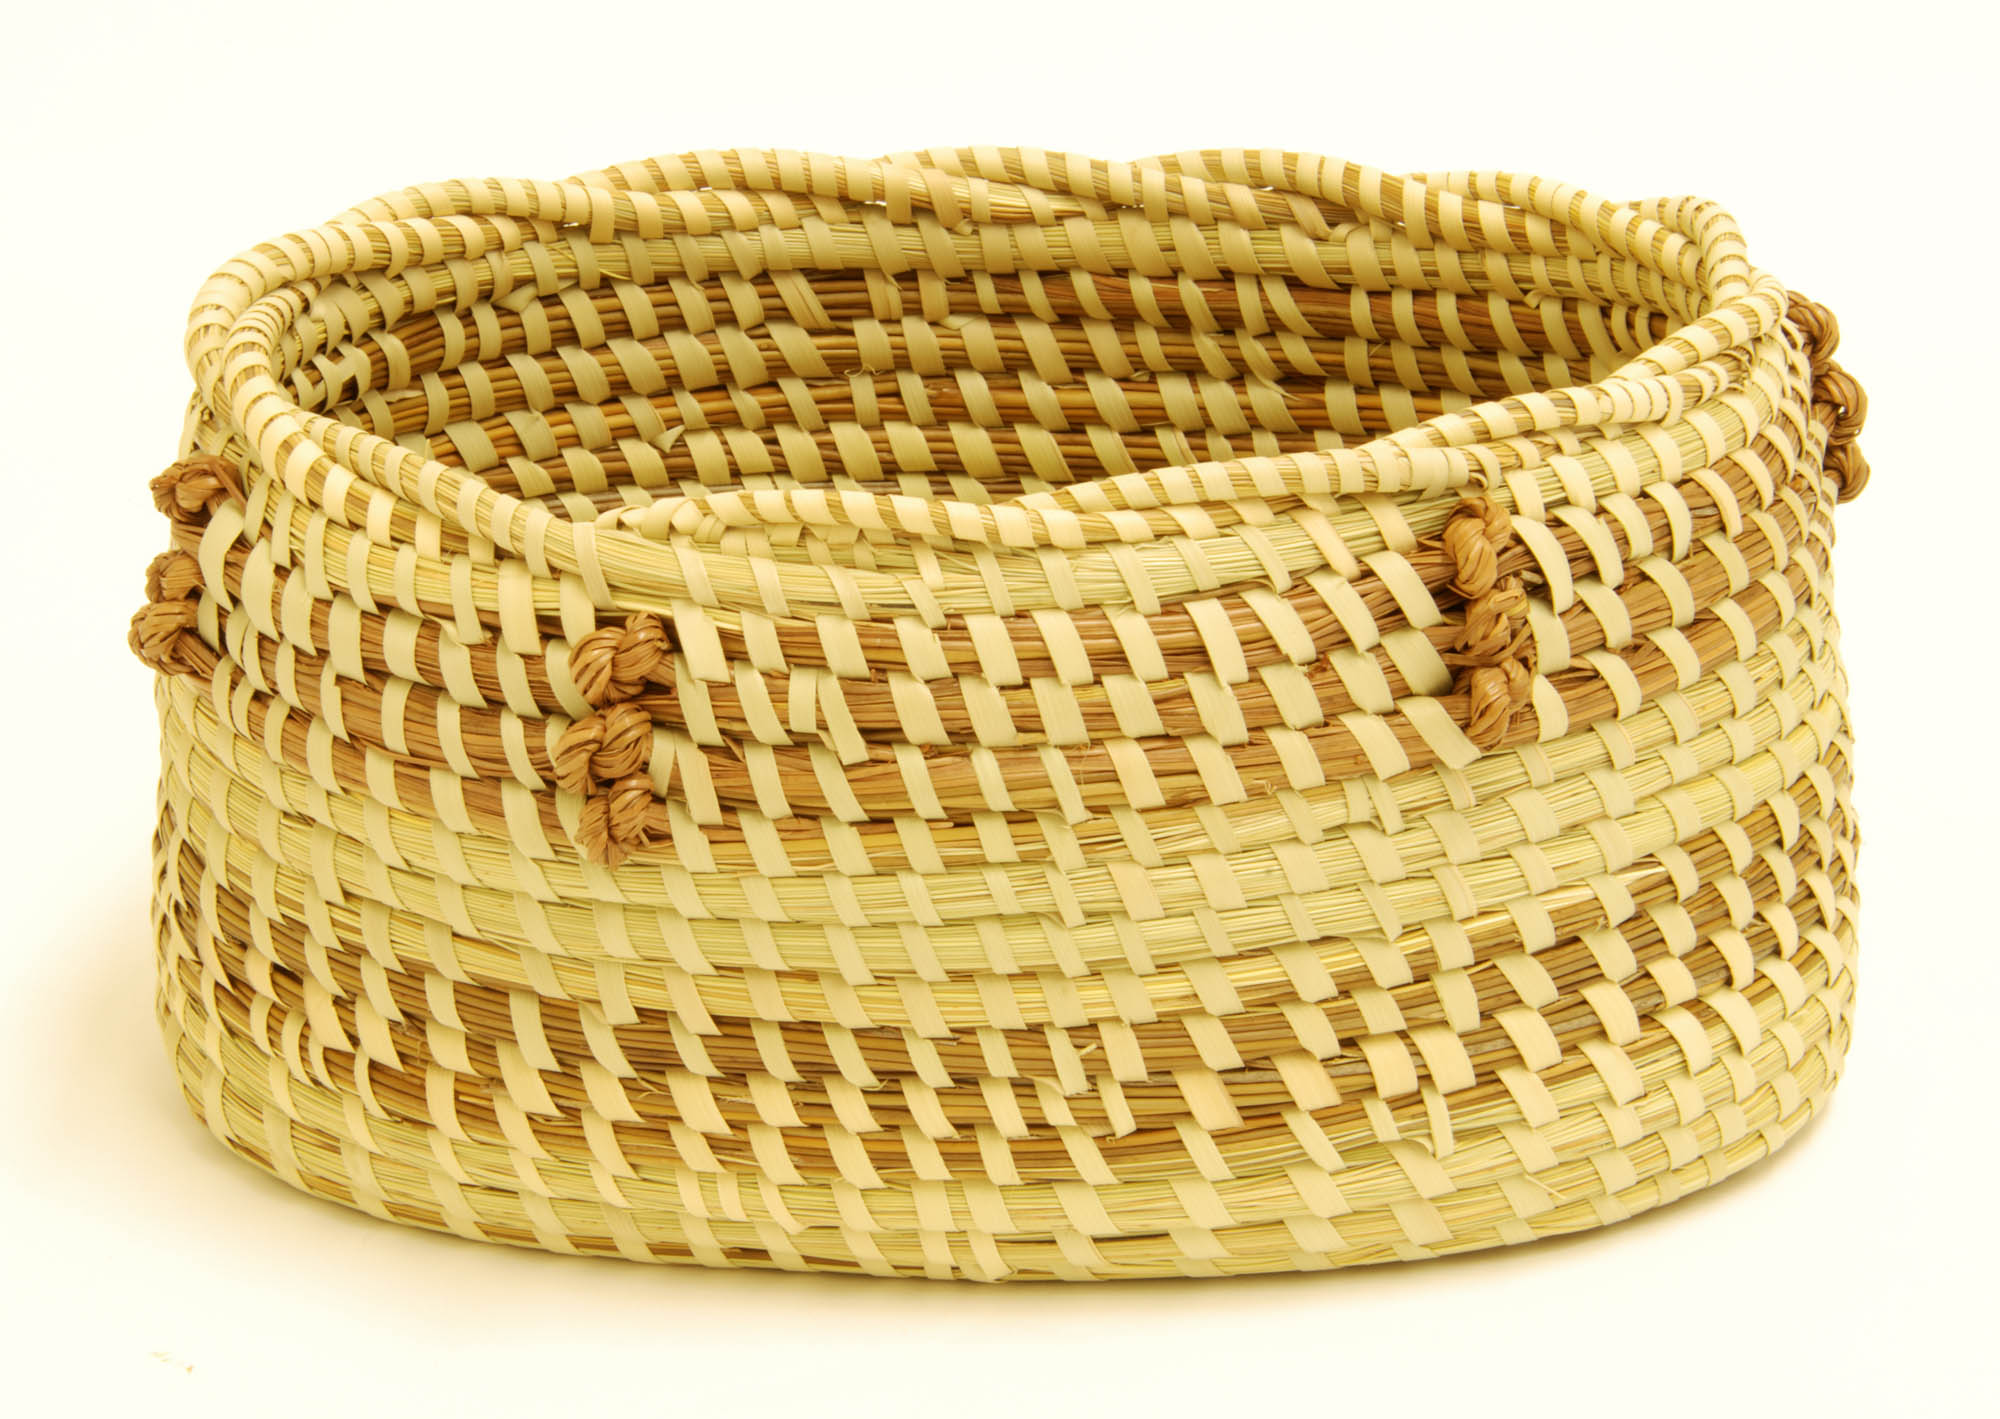 Trinity basket (Oval sweetgrass basket)